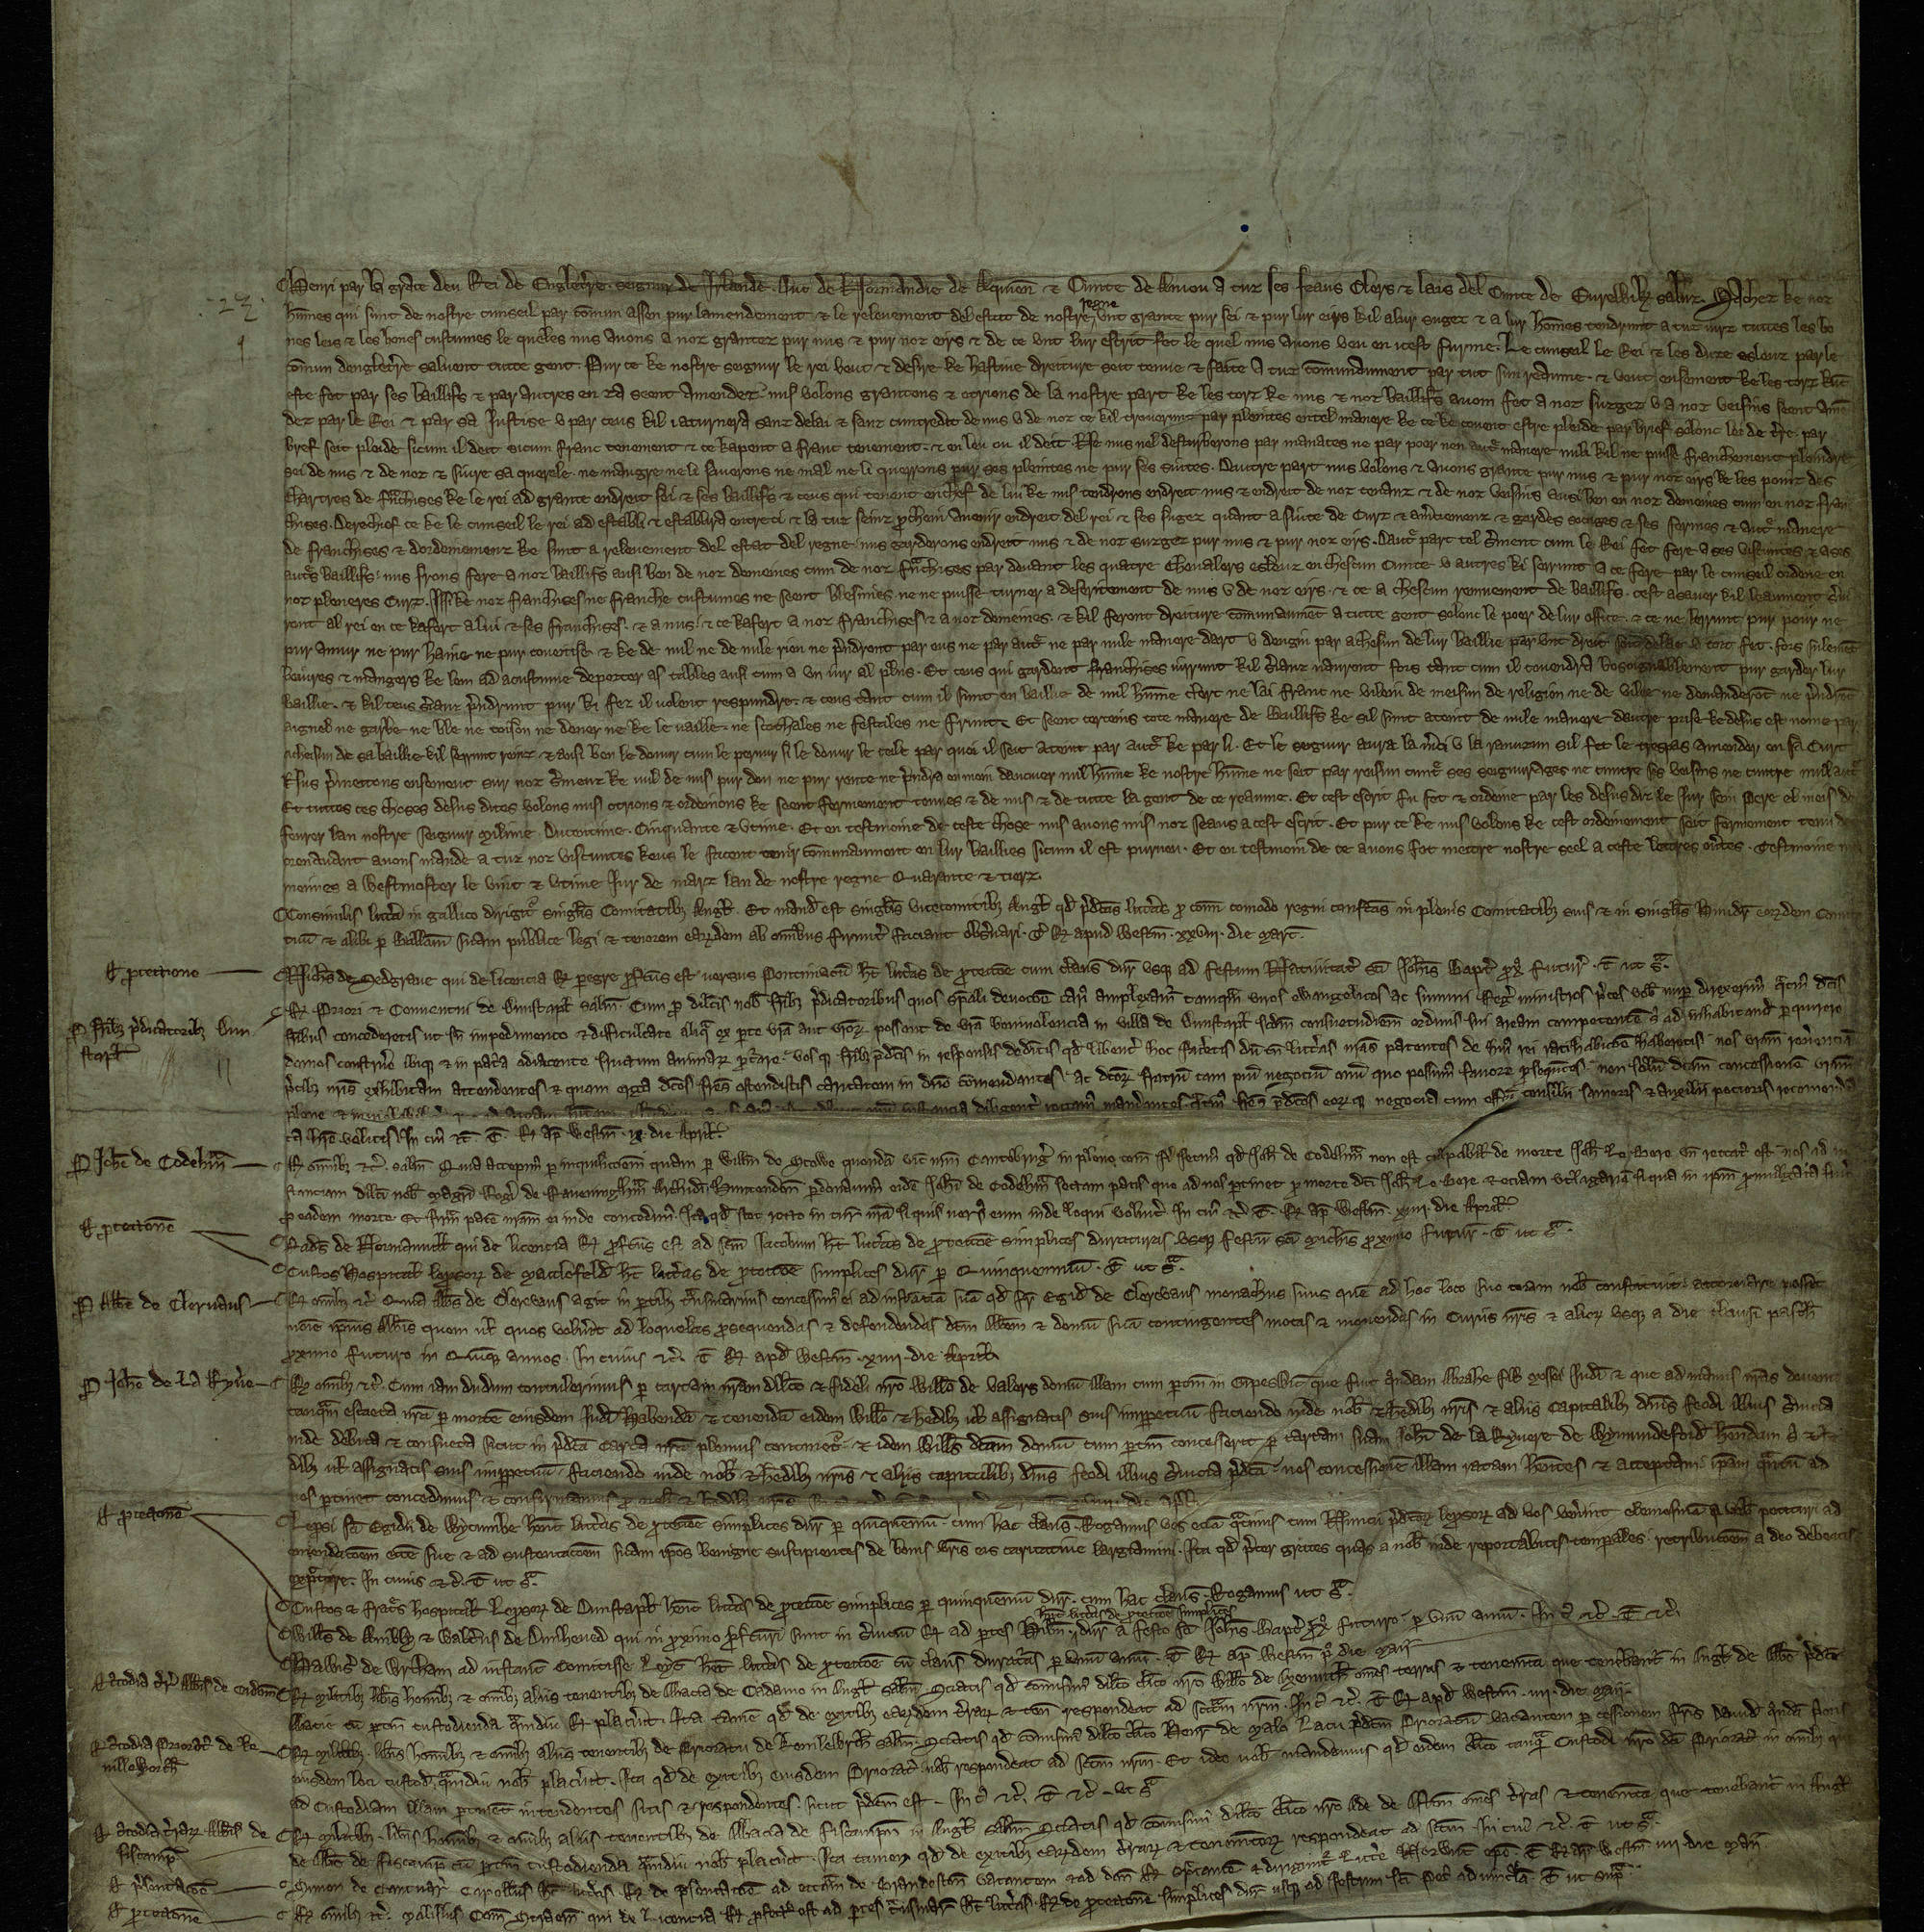 Study the Ordinance of the Magnates (great barons) published by Parliament